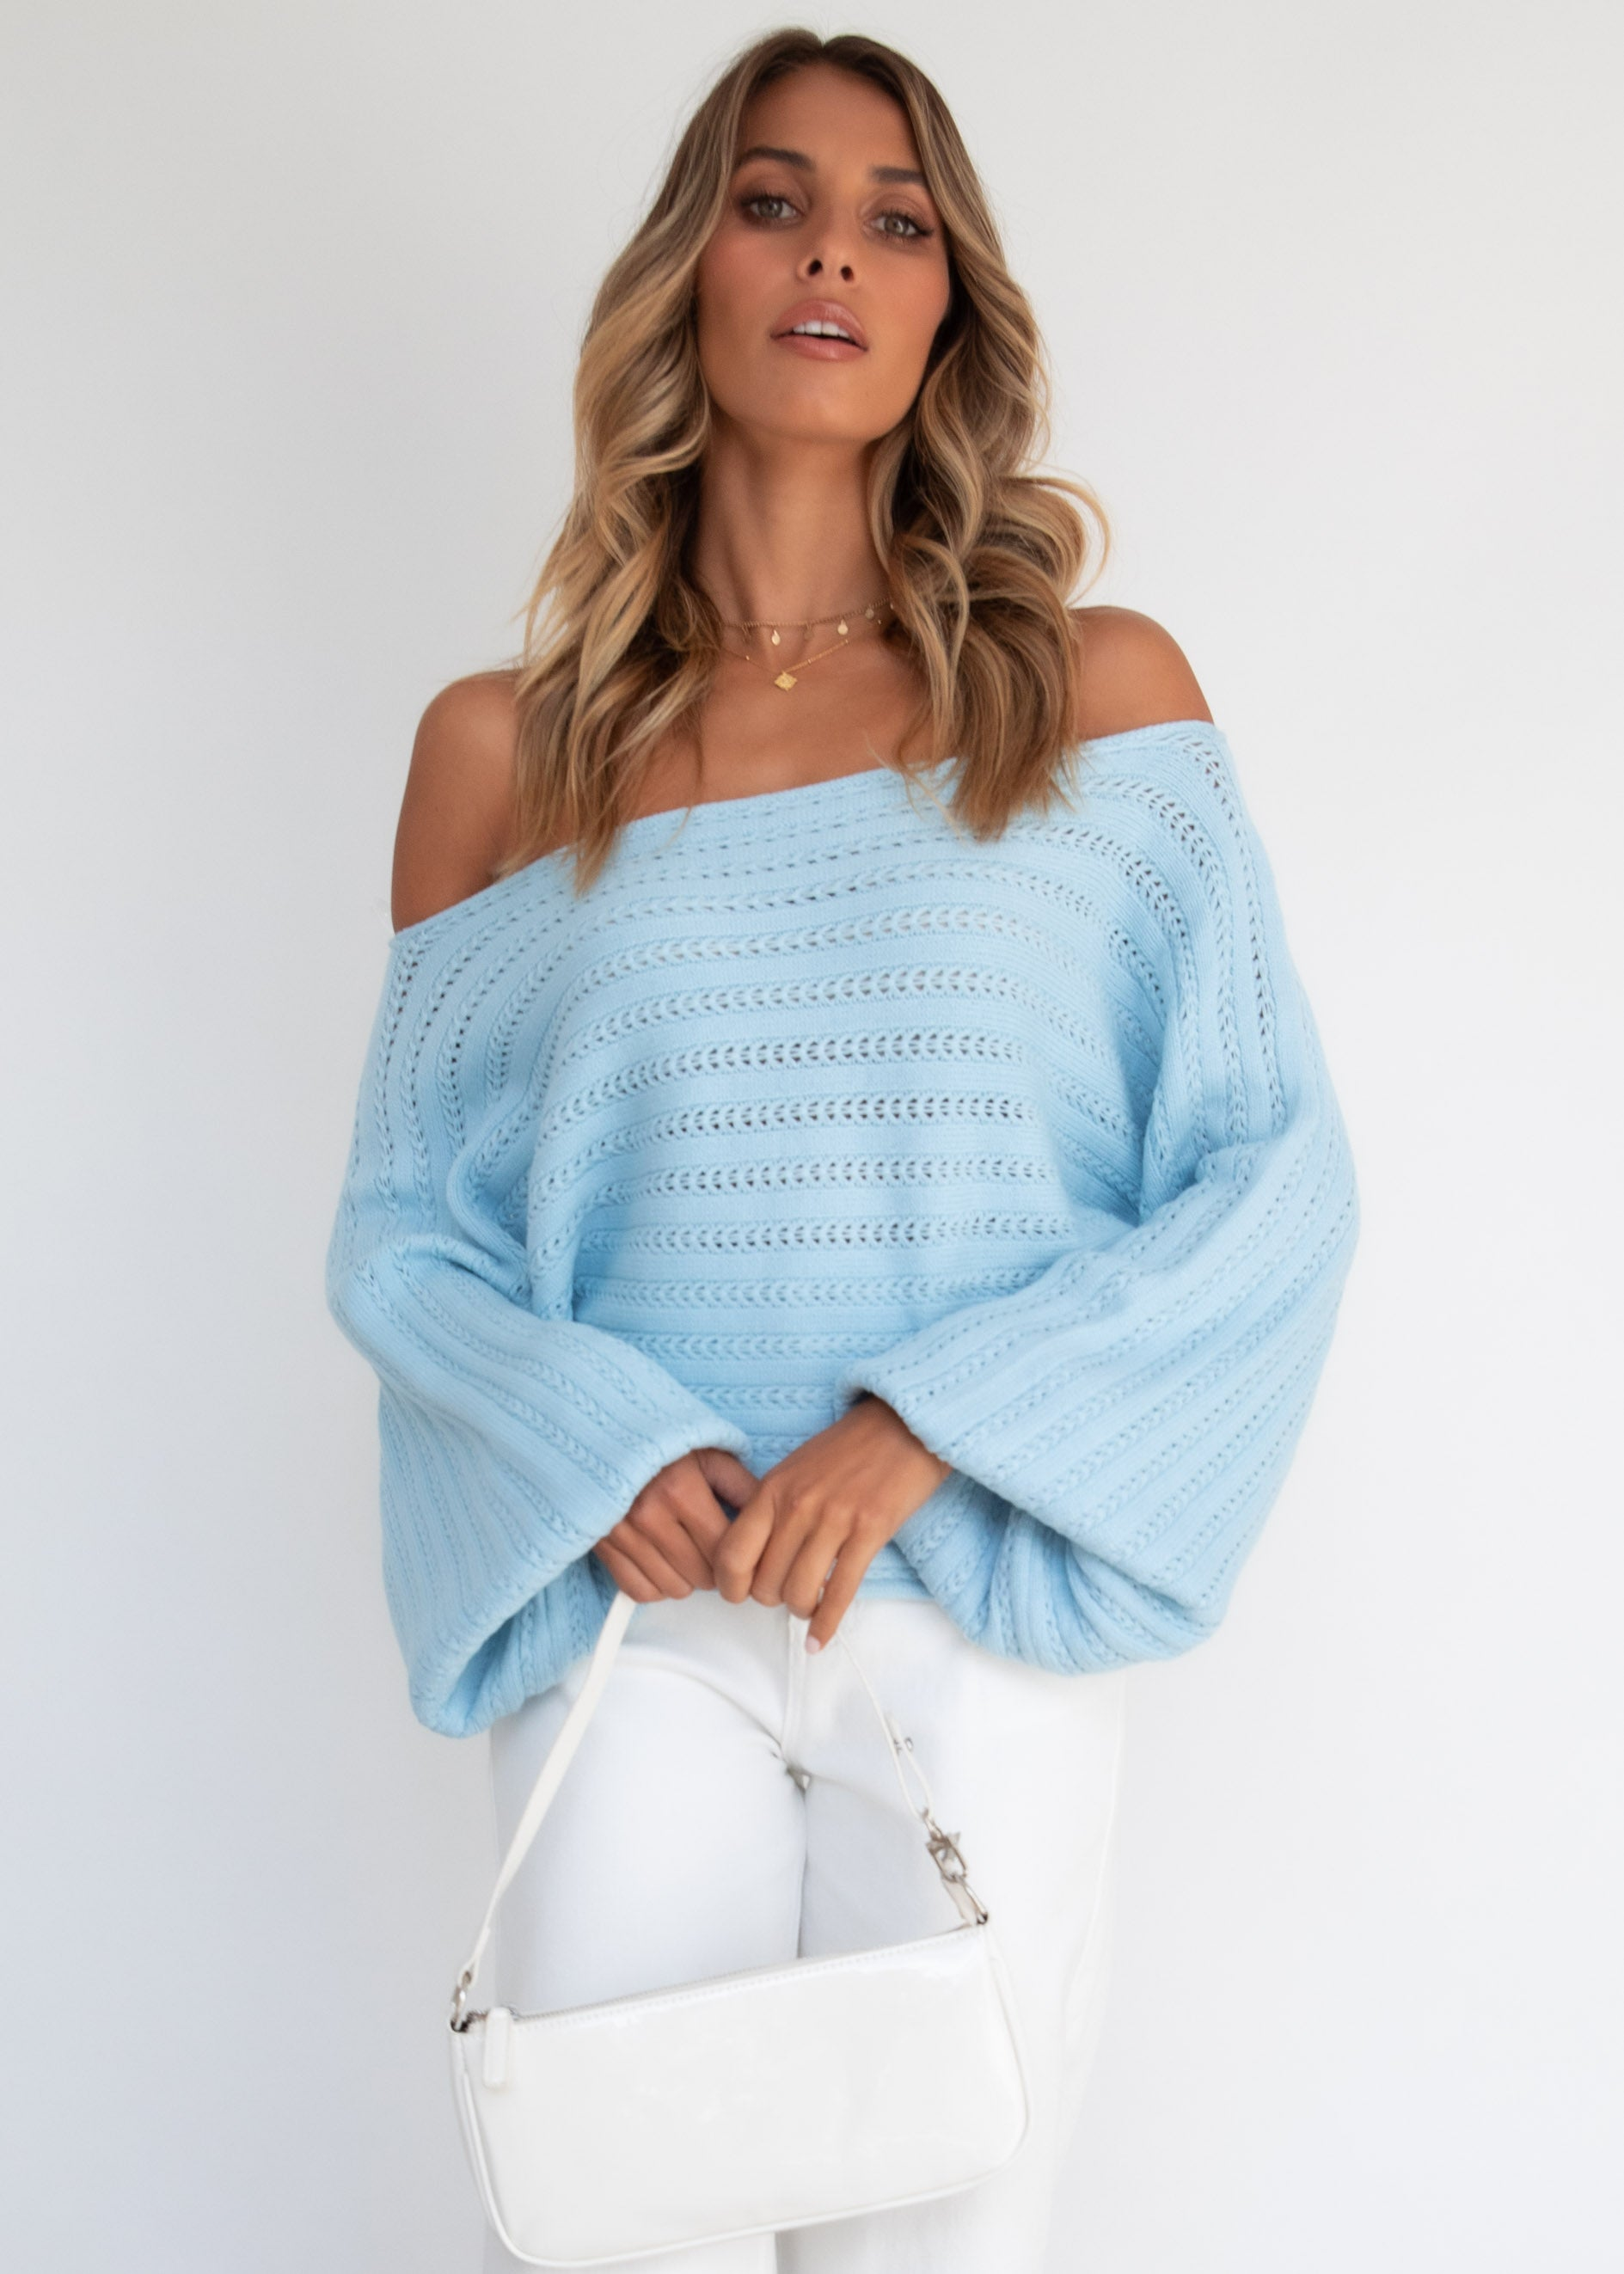 Live Your Life Sweater - Blue